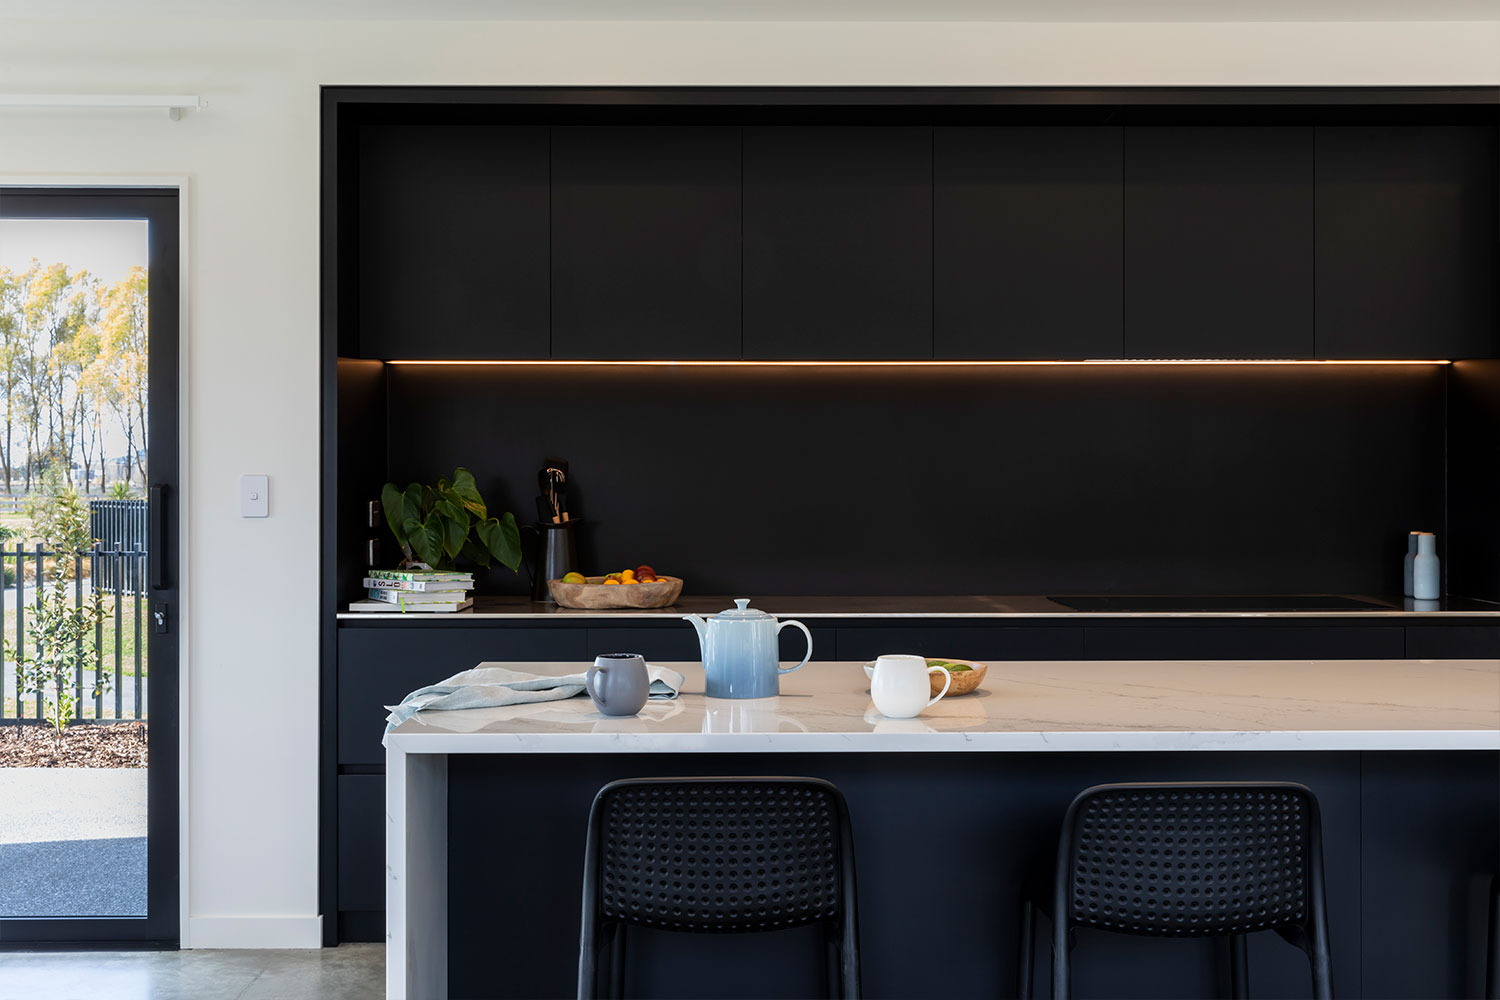 https://www.benchmarkhomes.co.nz/wp-content/uploads/2021/06/Projects-Evans-2-1500-x-1000-High-Res.jpg